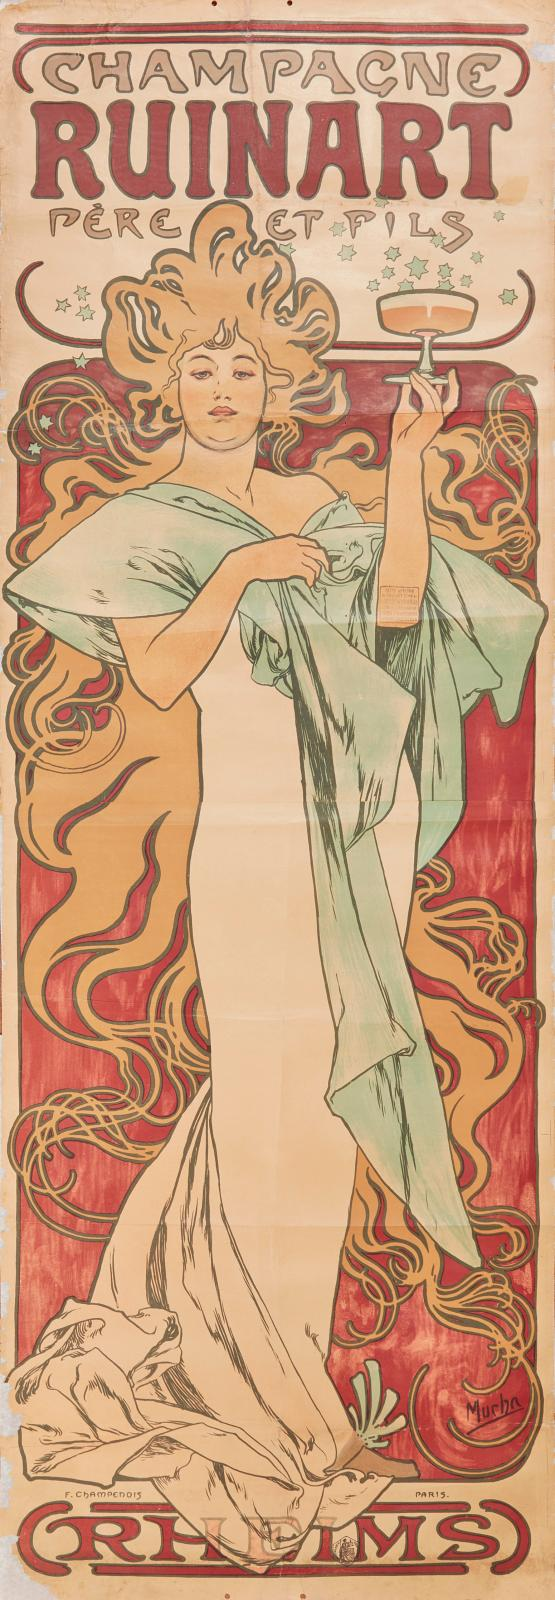 "Alphonse Mucha (1860-1939), ""Champagne Ruinart"", 1896, colour lithograph, 174 x 60.5 cm.Paris, Drouot, 2 February 2018, Audap-Mirabaud auction house.E"